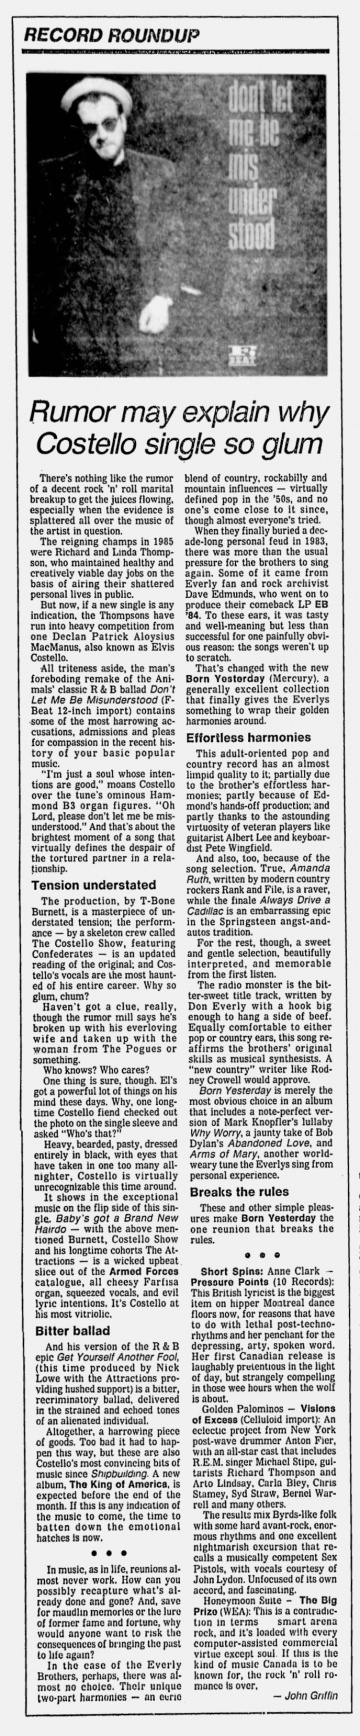 1986-02-13 Montreal Gazette page D13 clipping 01.jpg